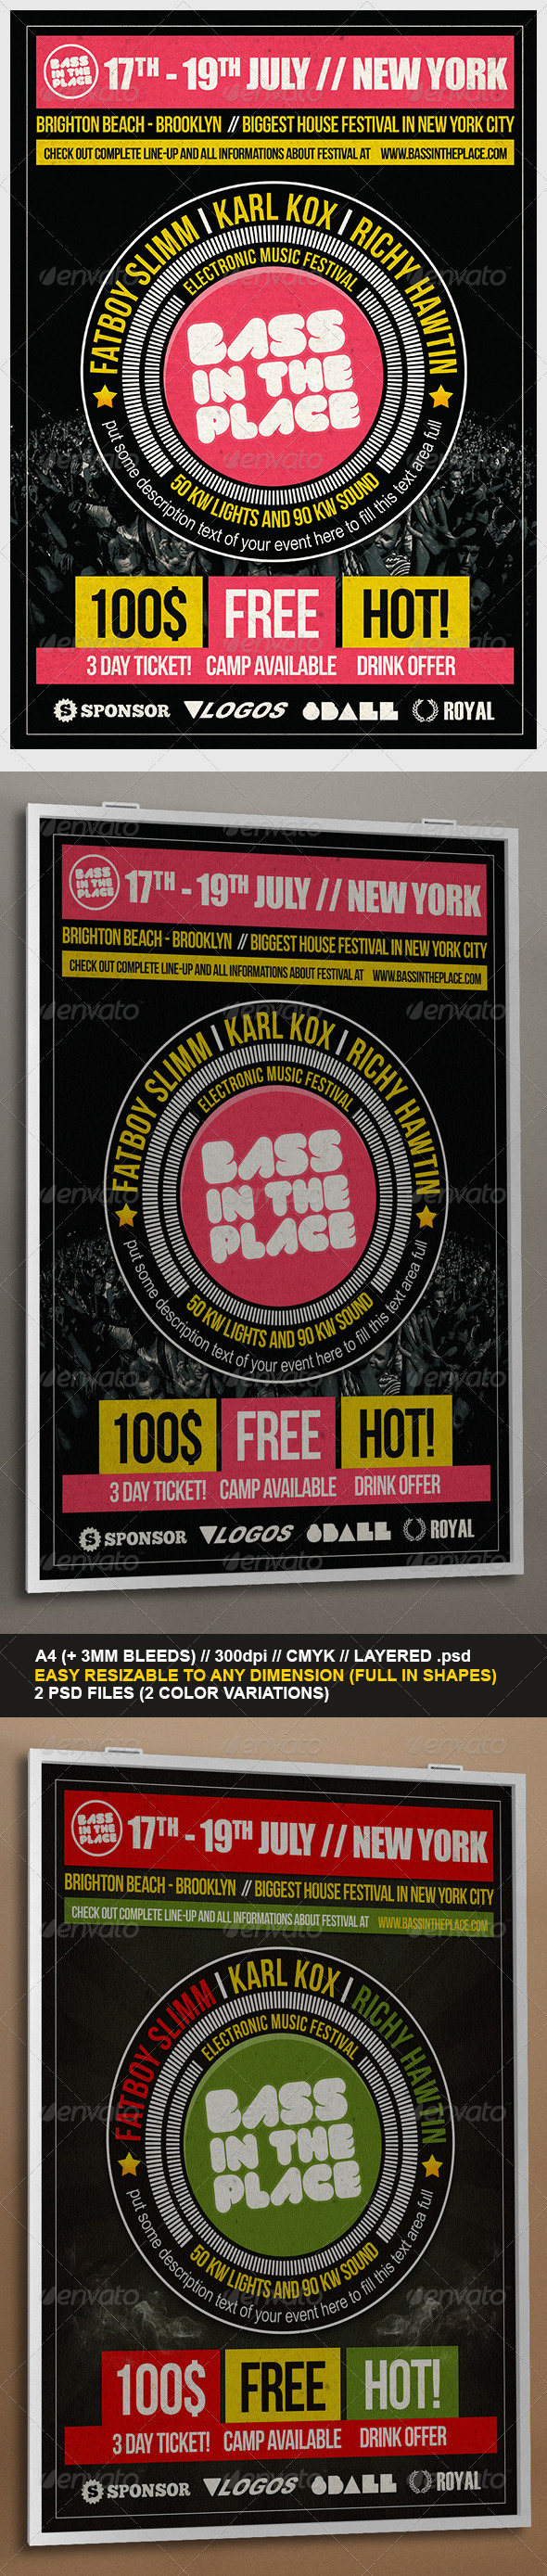 Universal Festival Flyer Template - Clubs & Parties Events